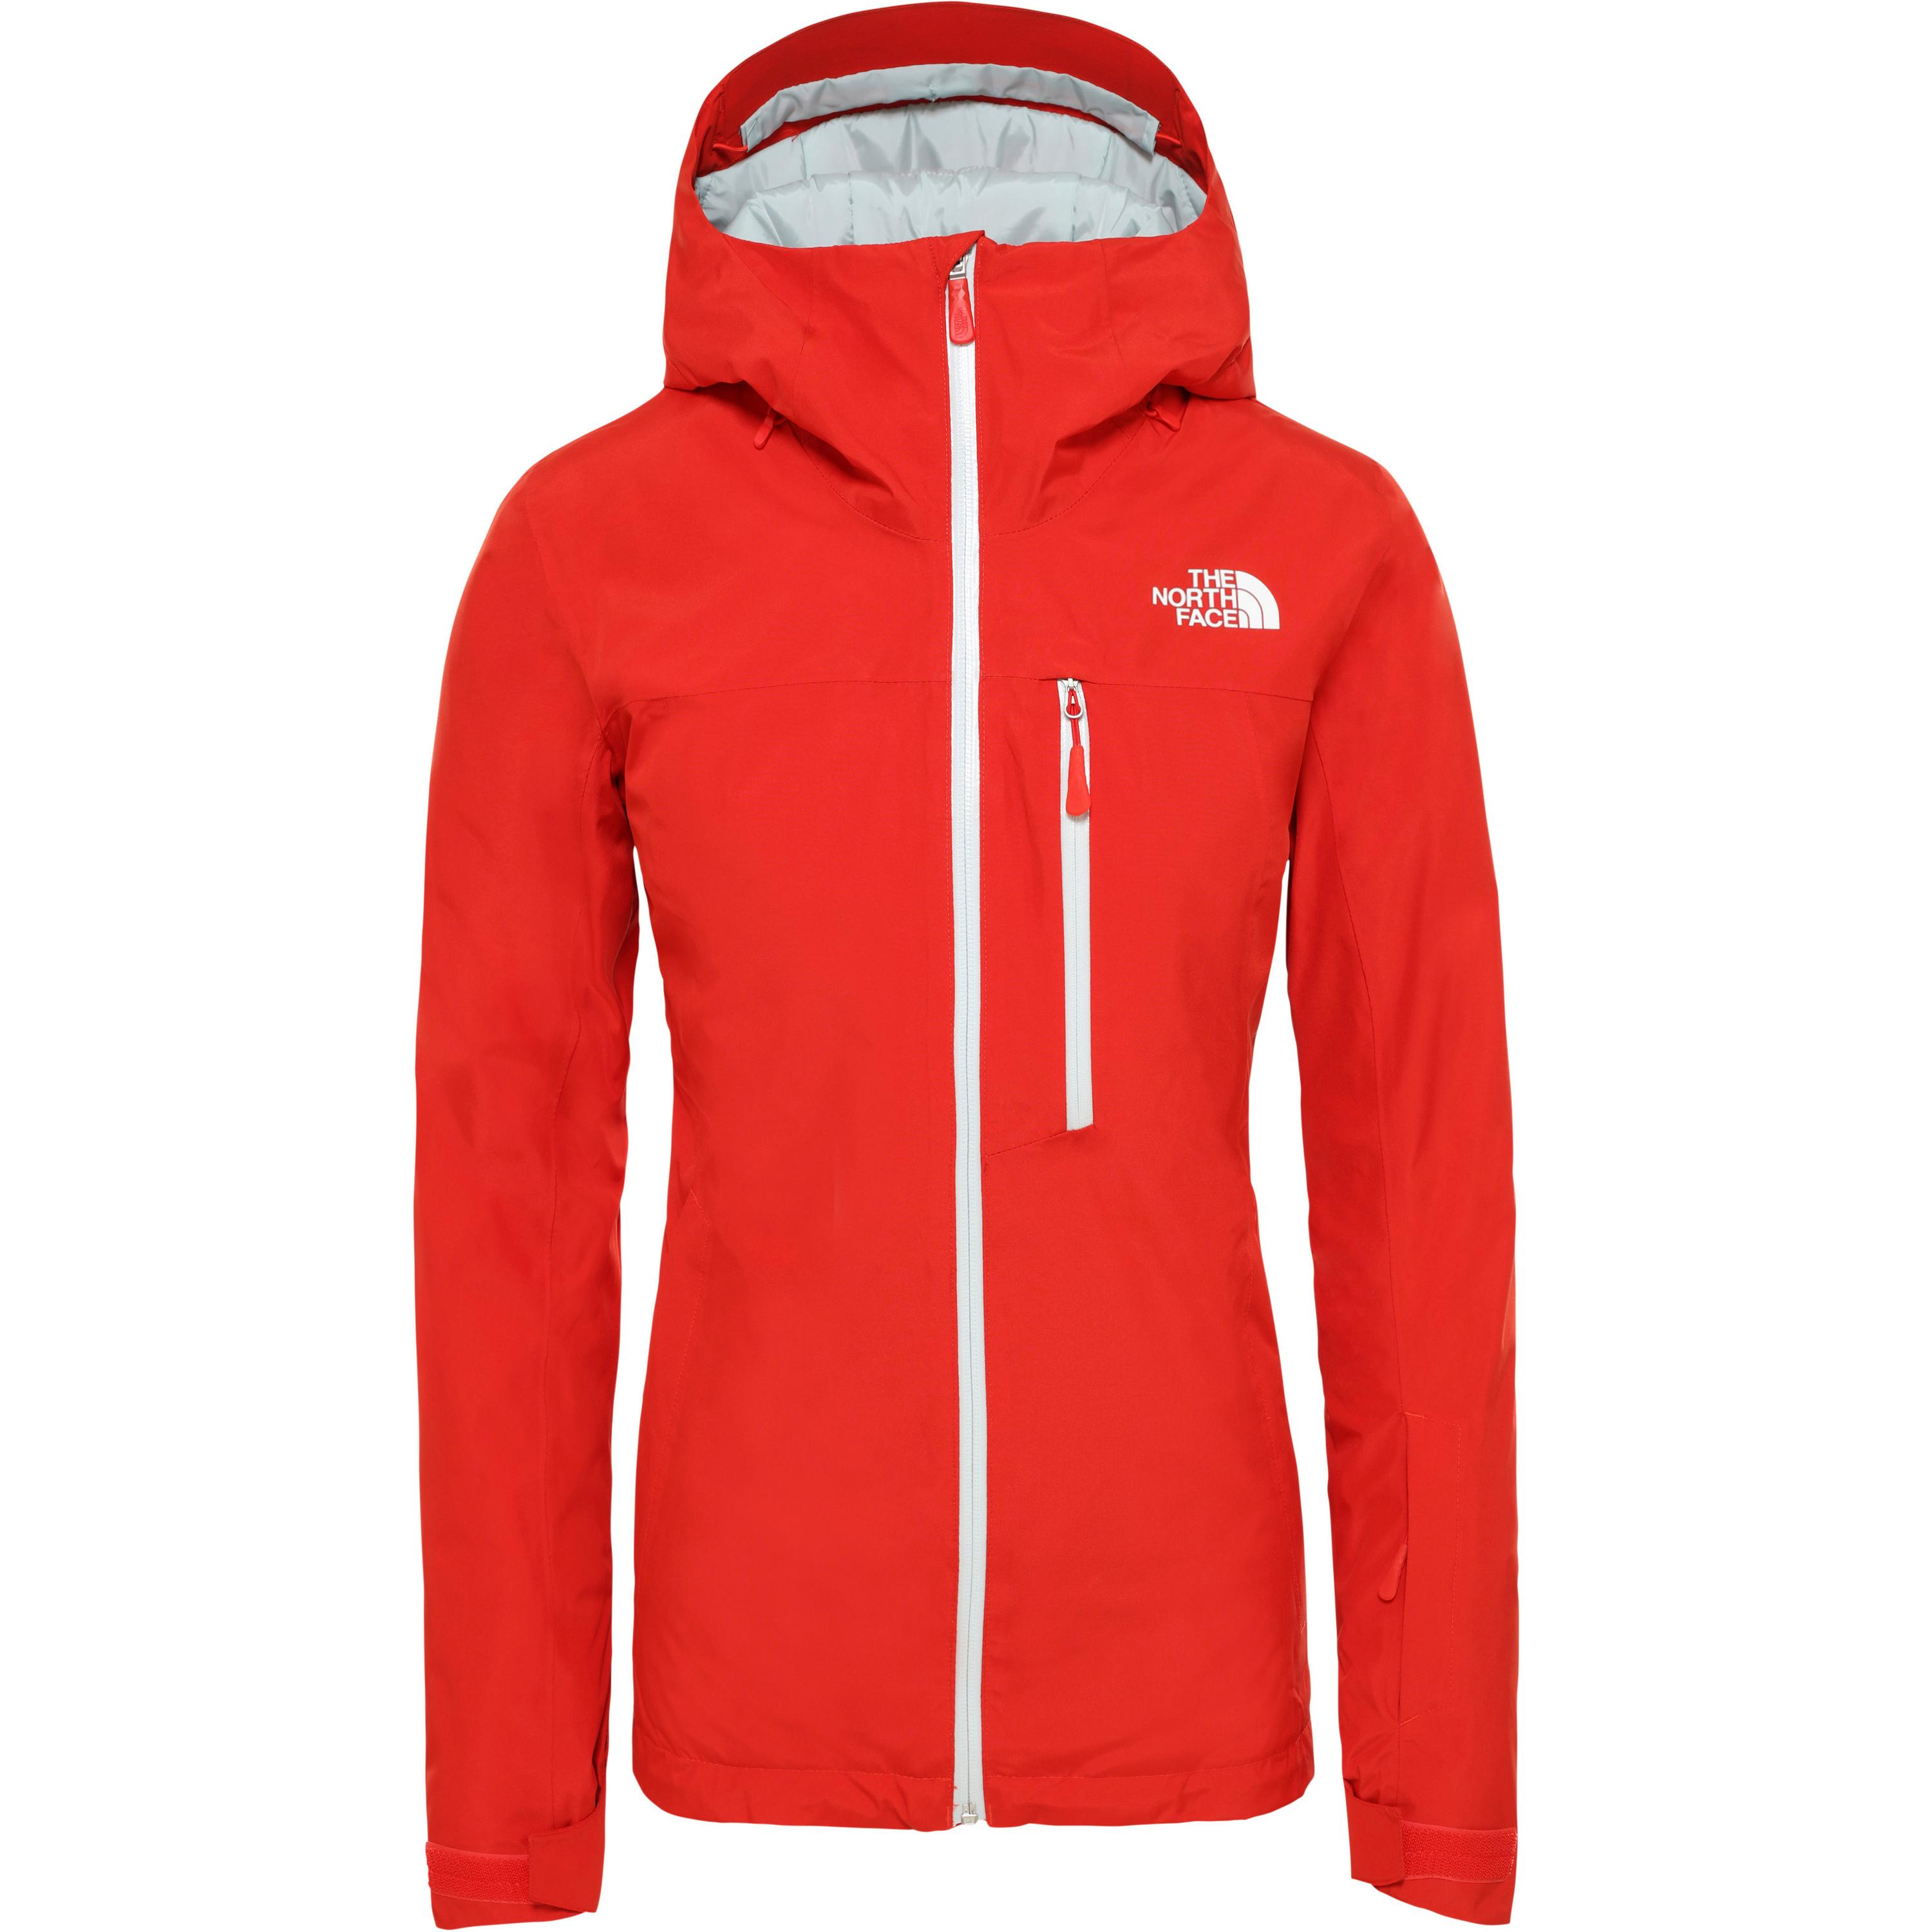 The North Face Descendit Skijacke Damen (rot, XS)